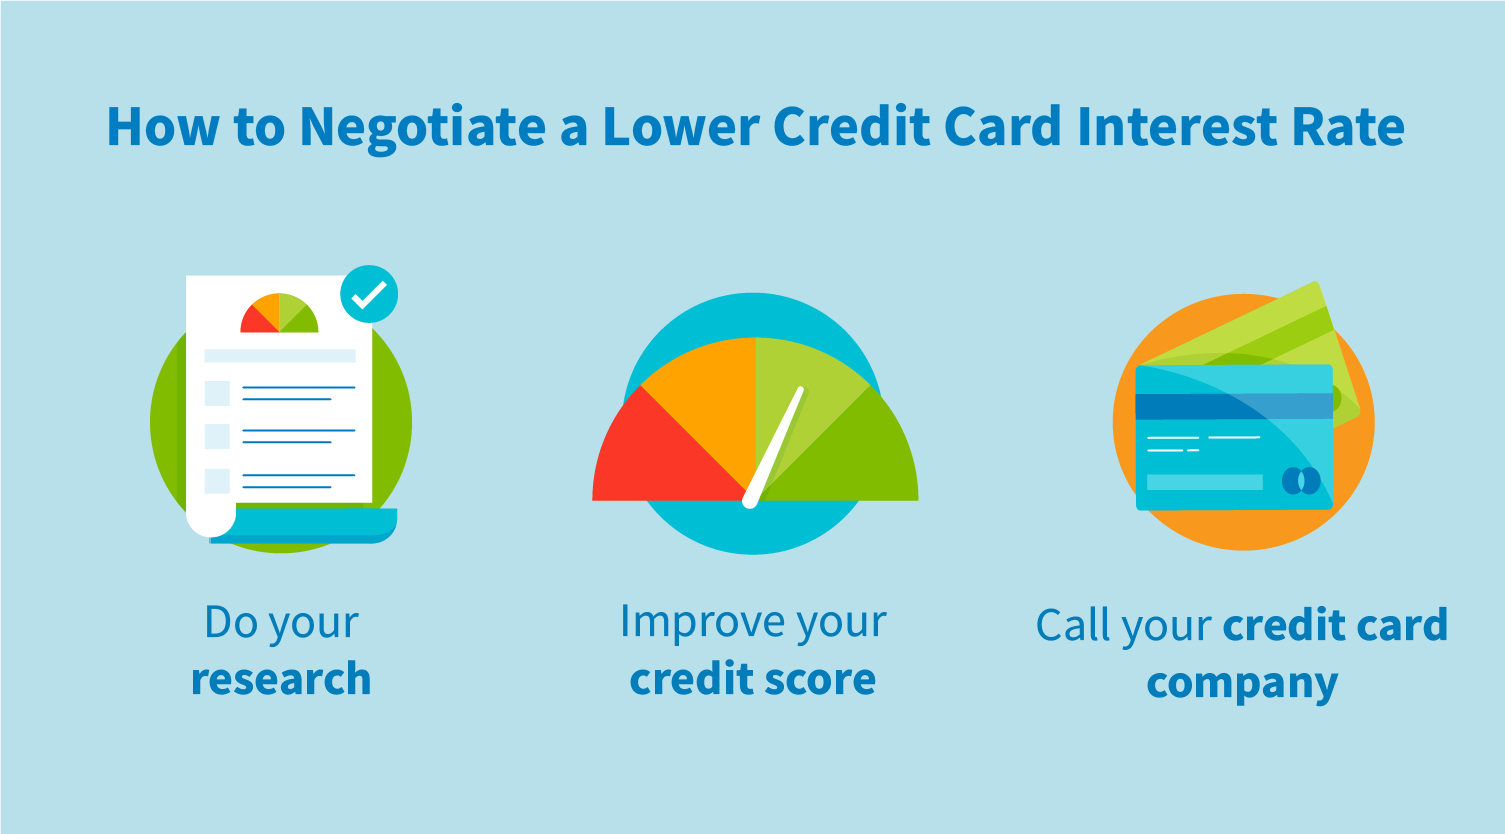 How to Negotiate a Lower Credit Card Interest Rate: Do your research, improve your credit score, call your credit card company